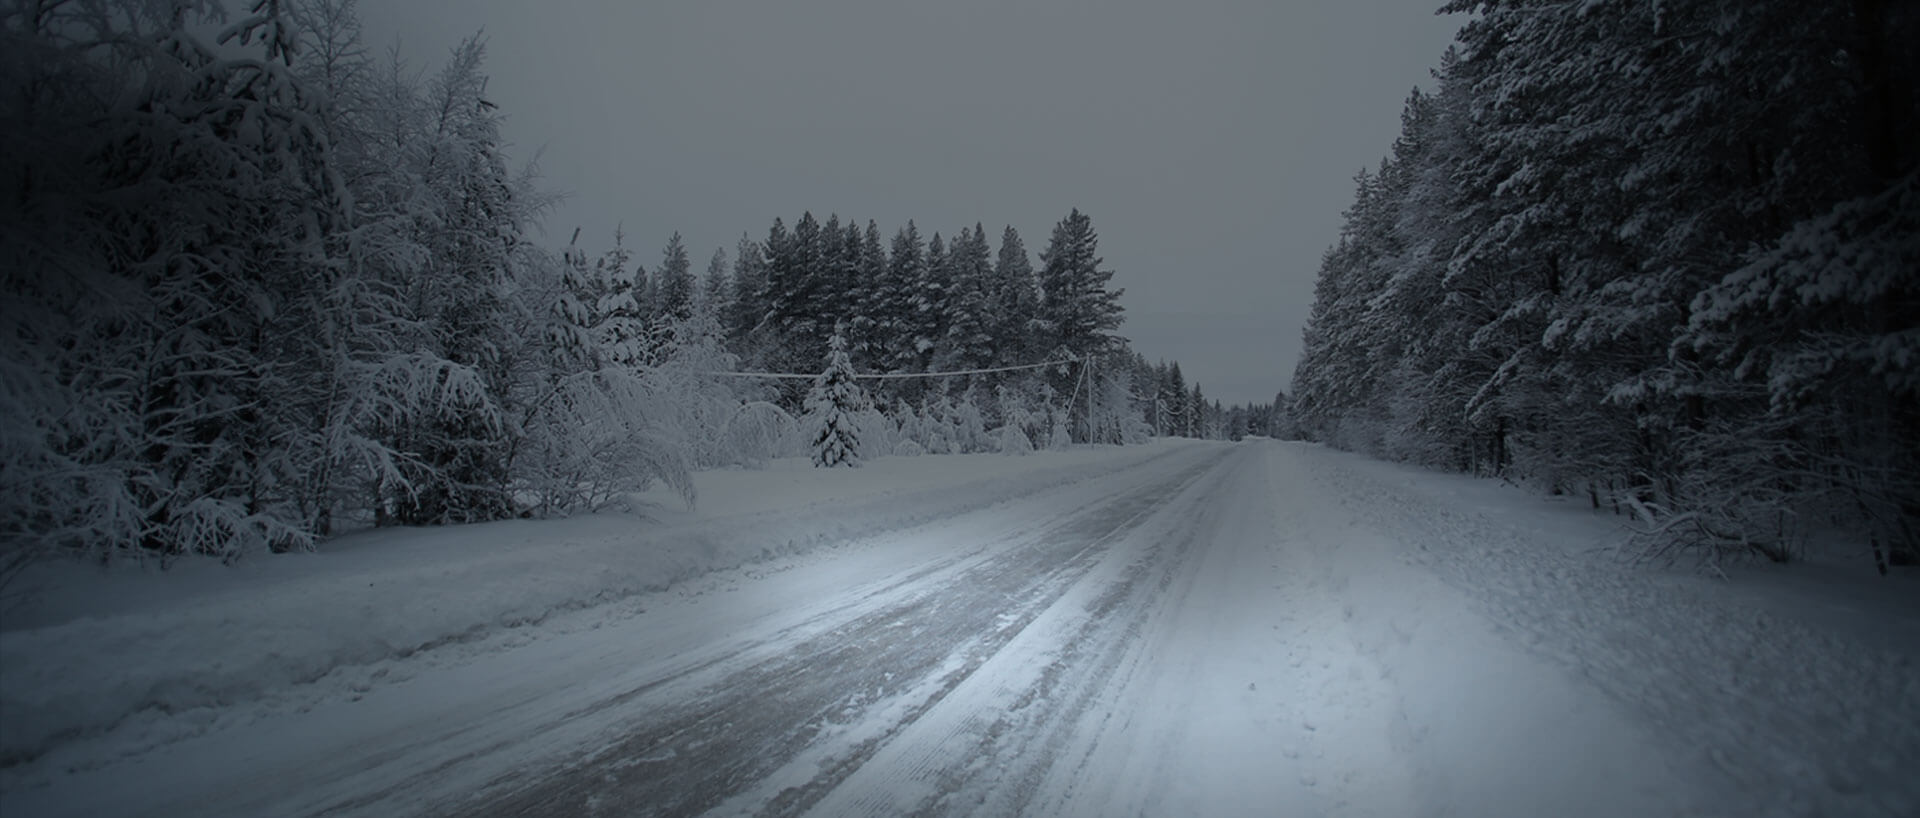 Image of Snow Packed Road